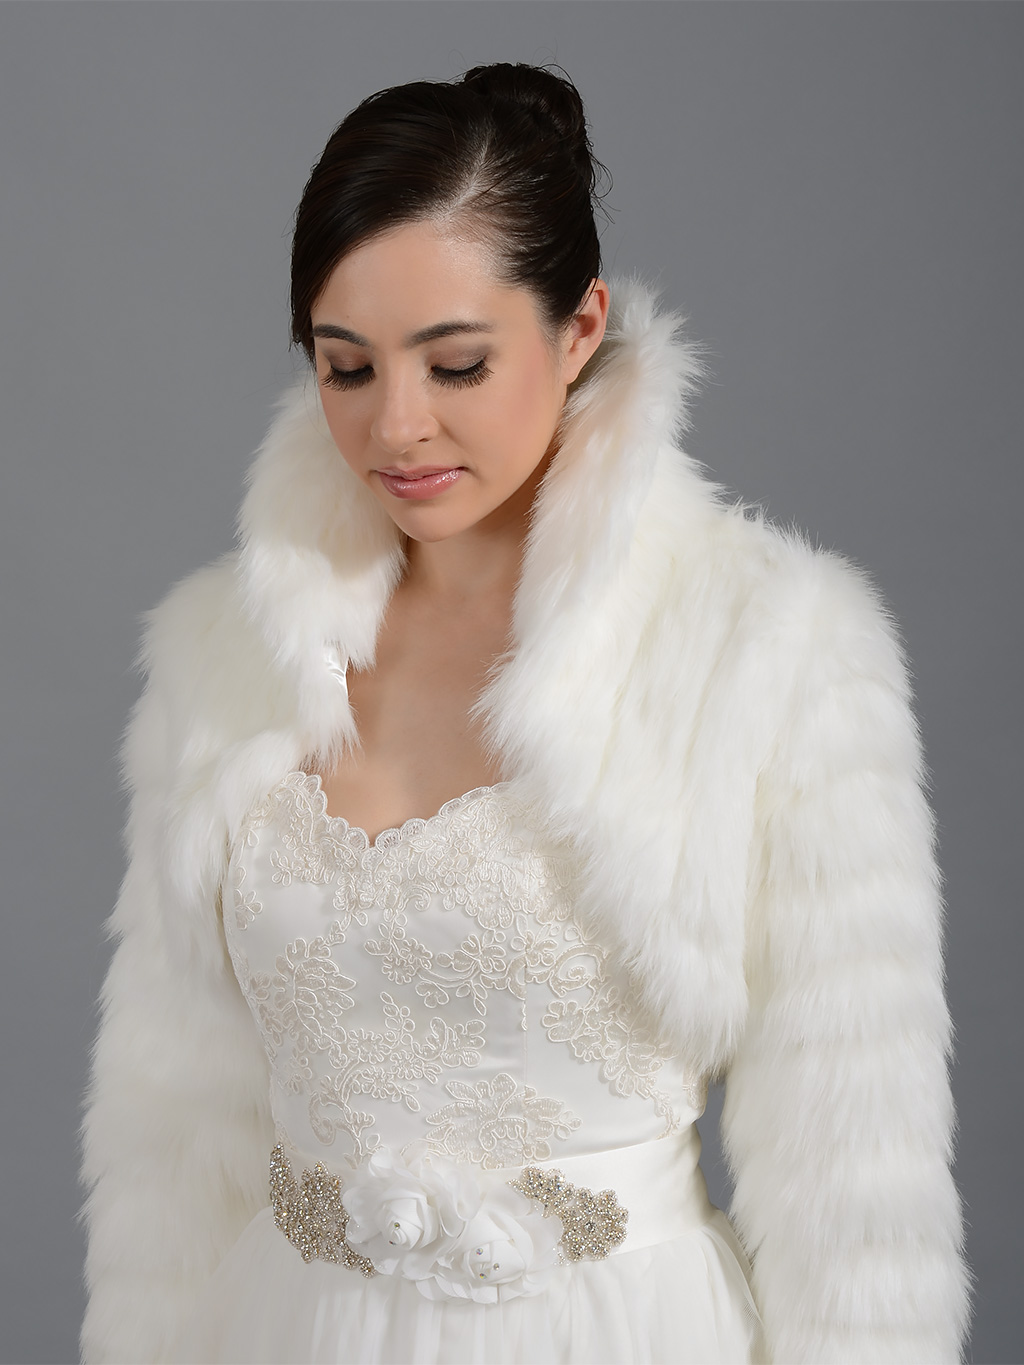 Bridal faux fur stole wrap,White faux fur wedding jacket shrug bolero Details. Faux Mink Fur Stole Cape with Collar with hidden fastener Natural Brown Sable Regular Size Material: Faux Fur/Satin Normally you can receive in 15~35 days,please contact me if you need fast delivery!Price: $